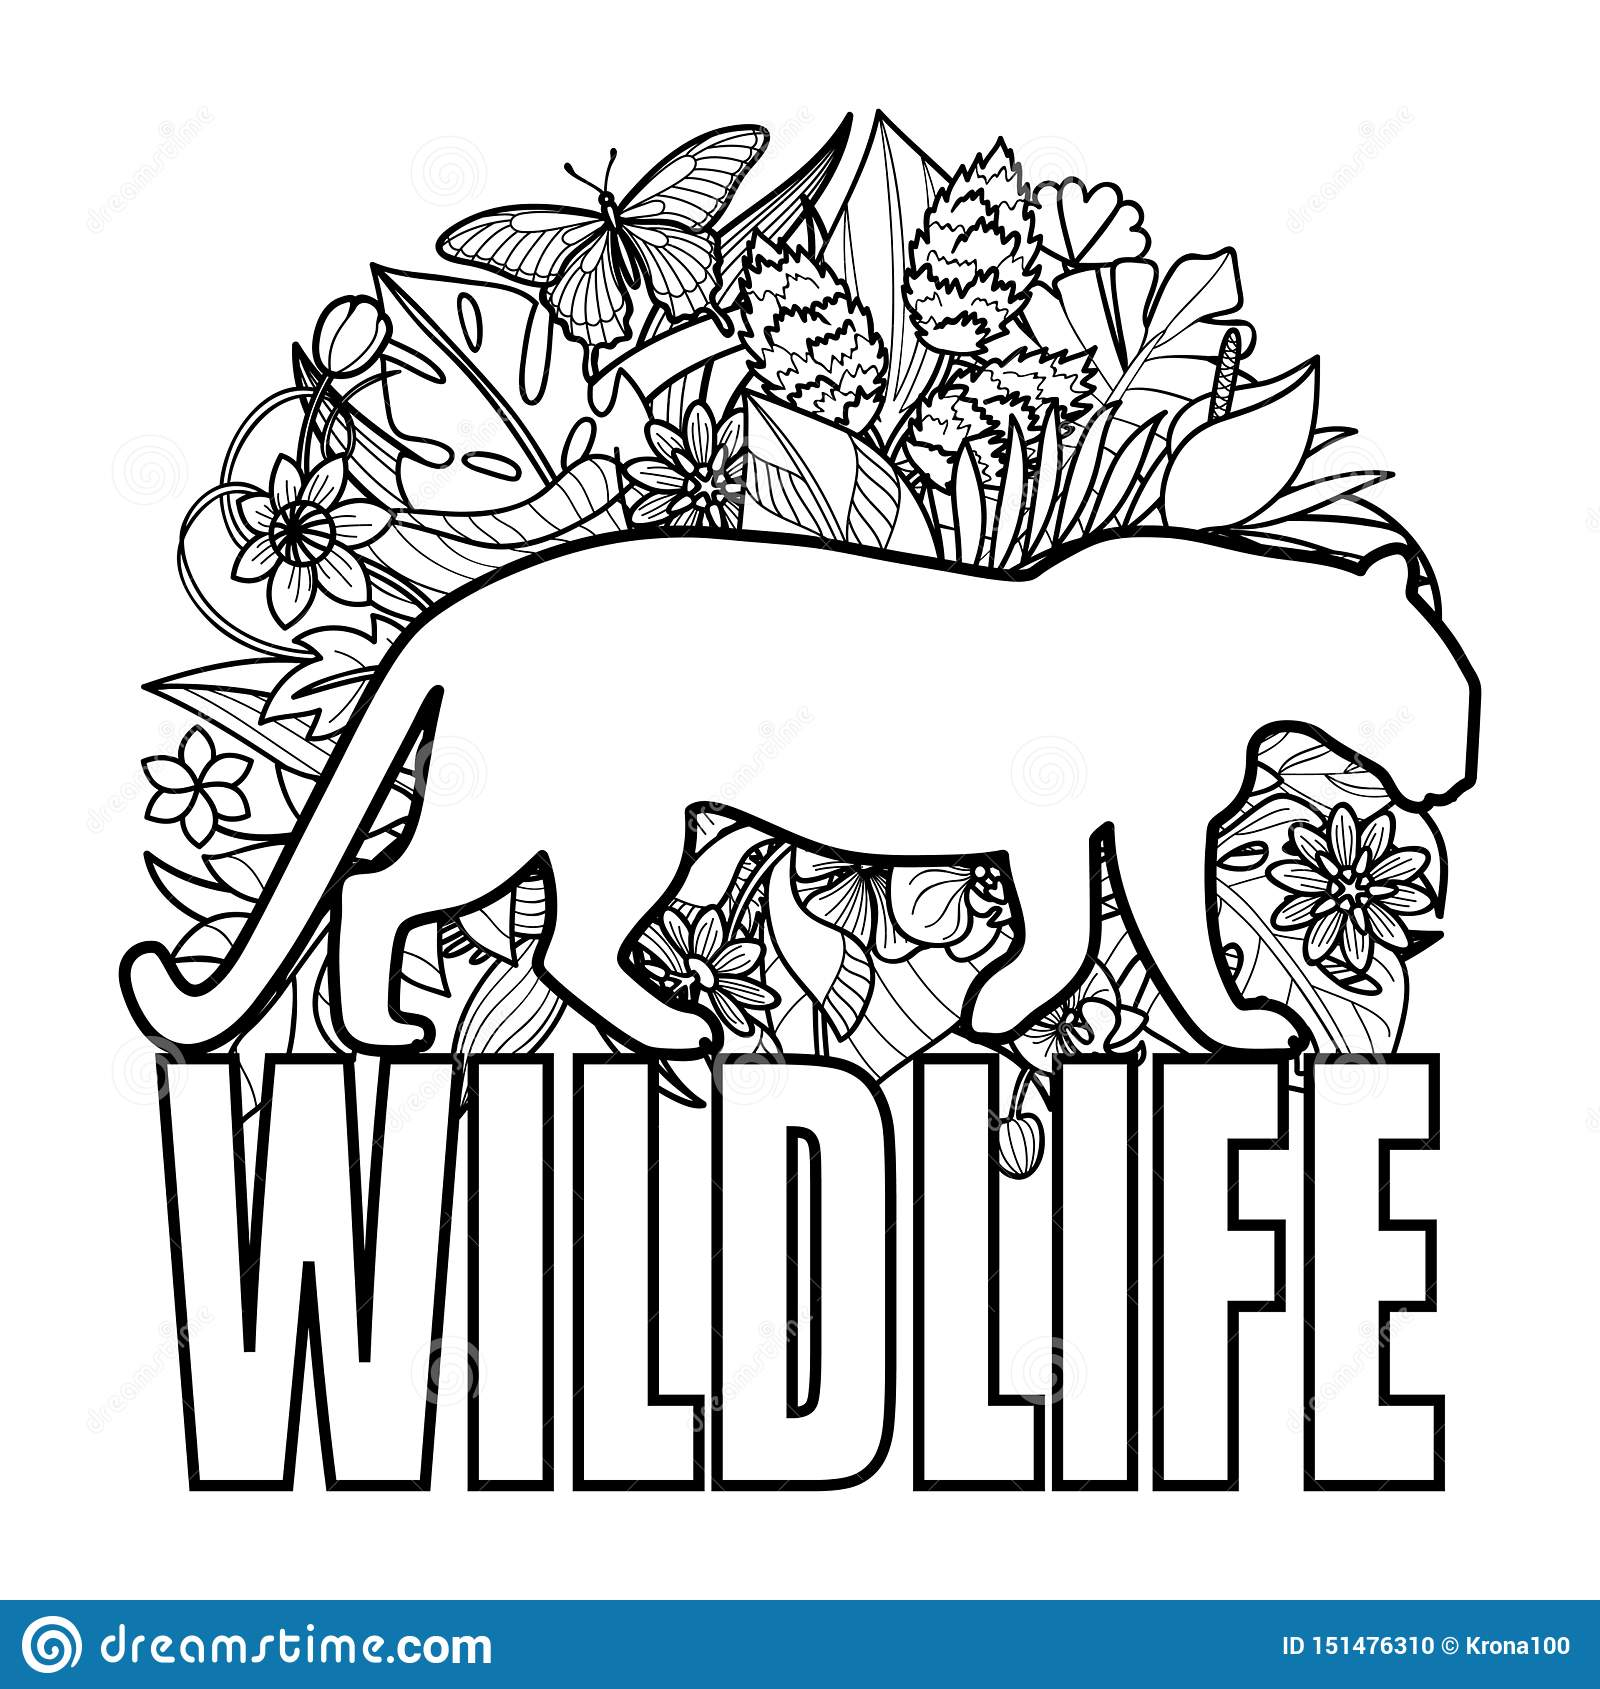 Wildlife Coloring Page With Leopard And Tropical Plants Stock Vector Illustration Of Page American 151476310